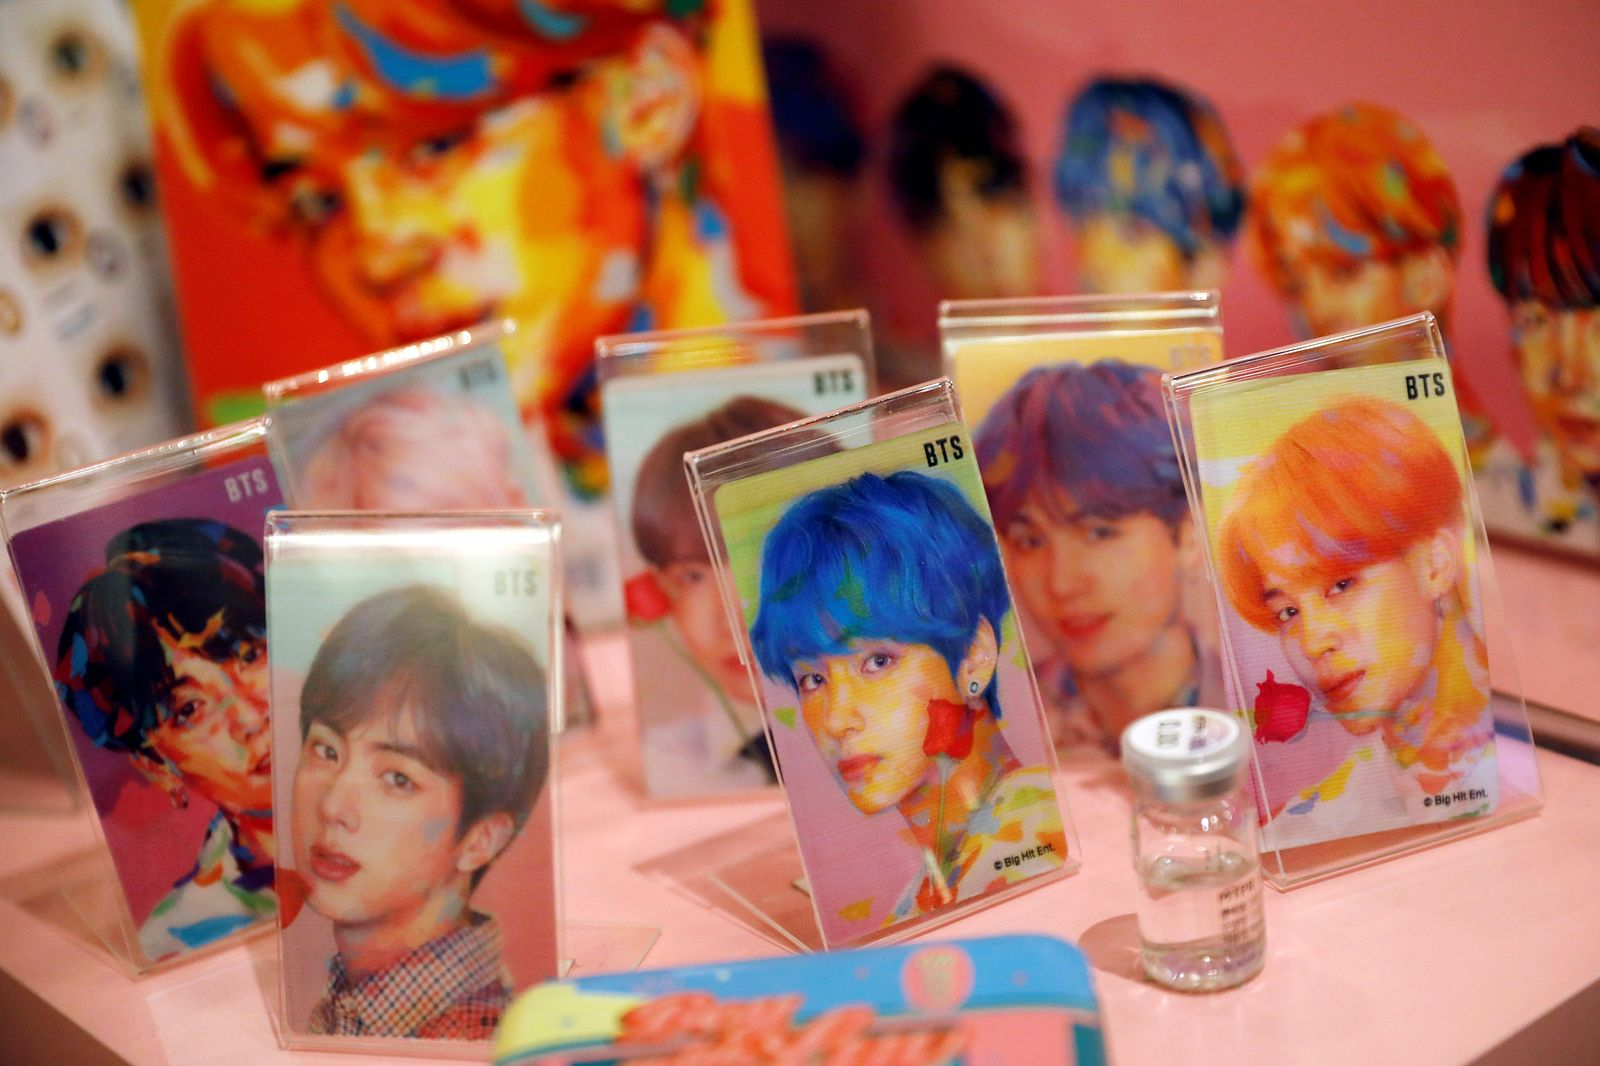 Goods of K-pop idol boy band BTS are seen on display at a pop-up store selling BTS merchandise in Seoul